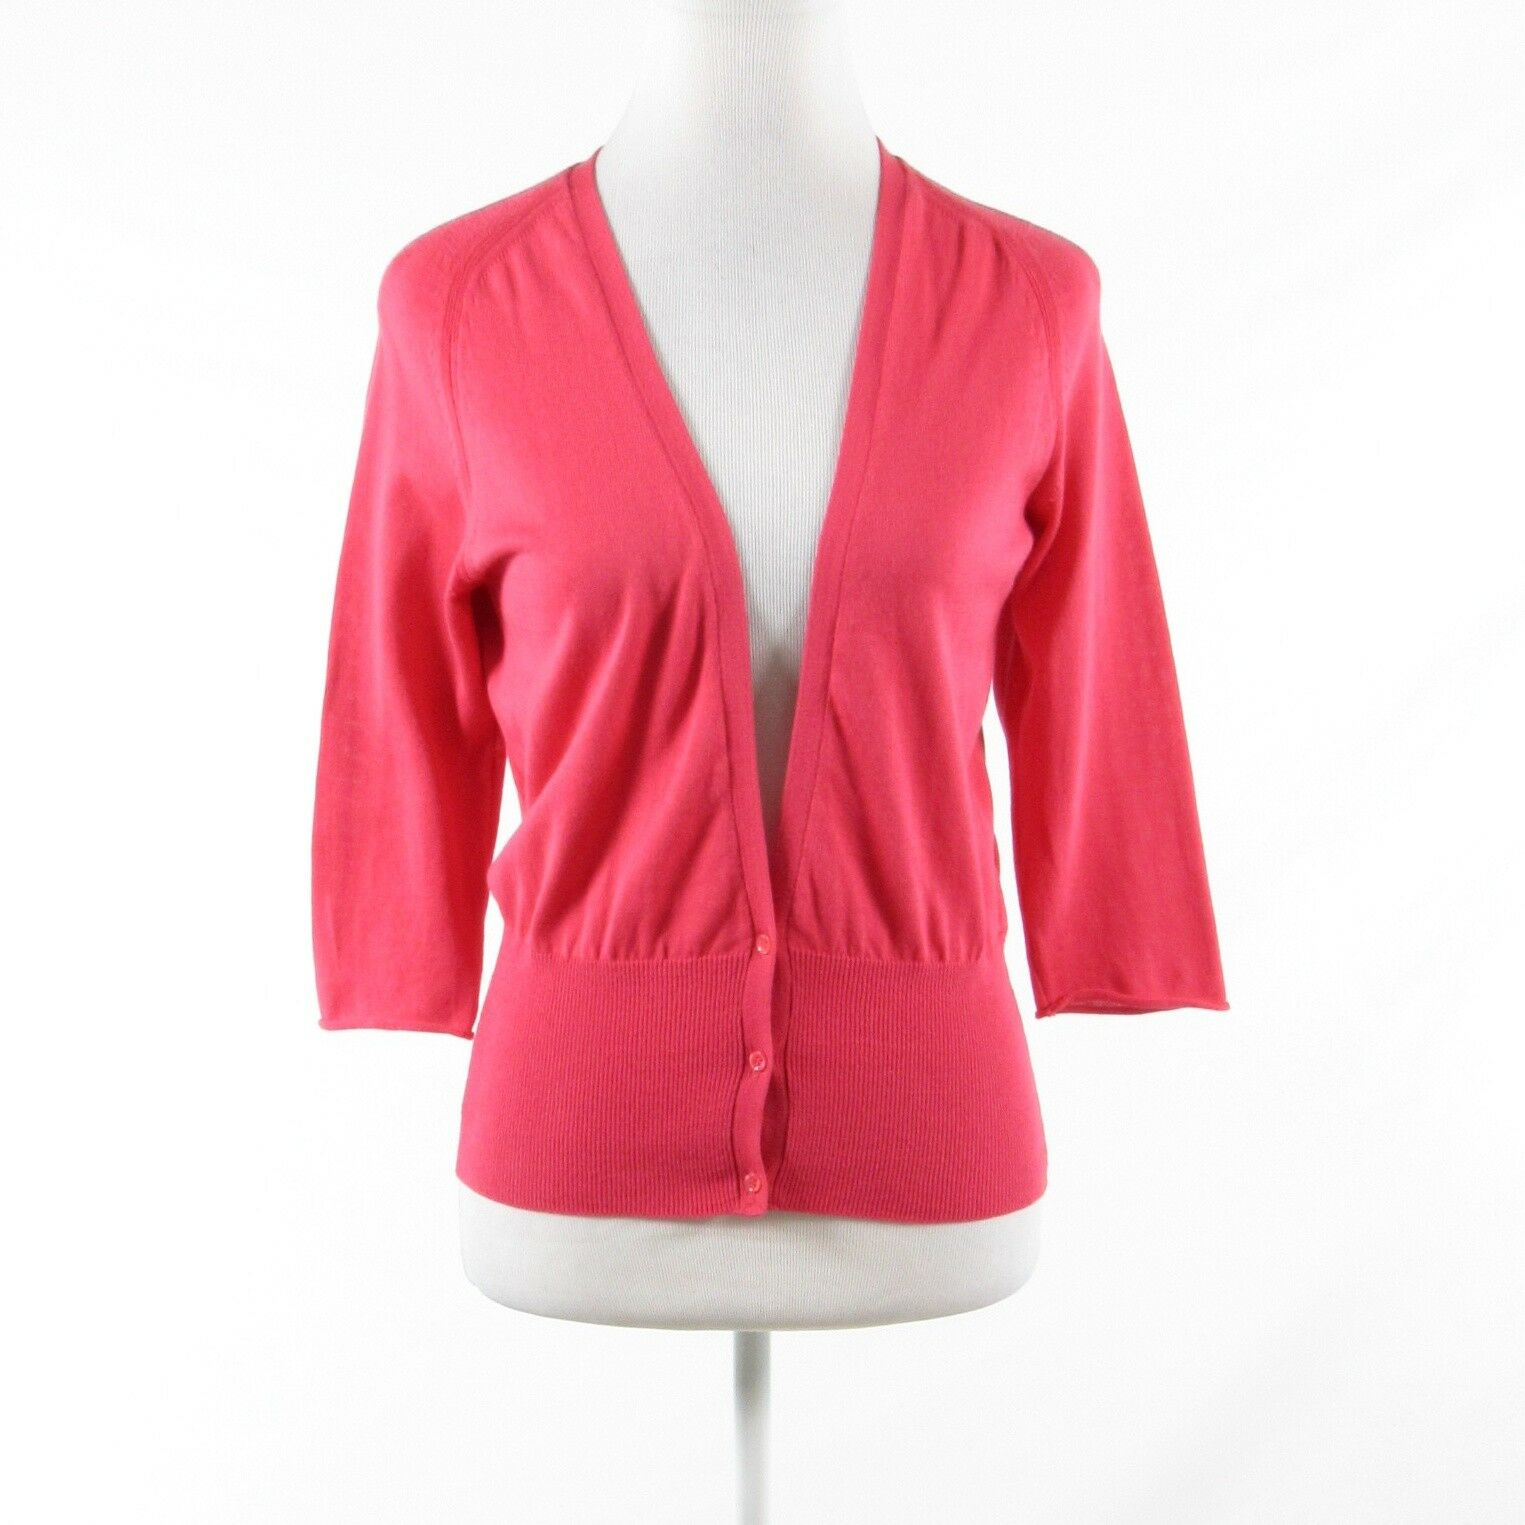 Pink red 100% cotton PIAZZA SEMPIONE 3 4 sleeve cardigan sweater IT40 6